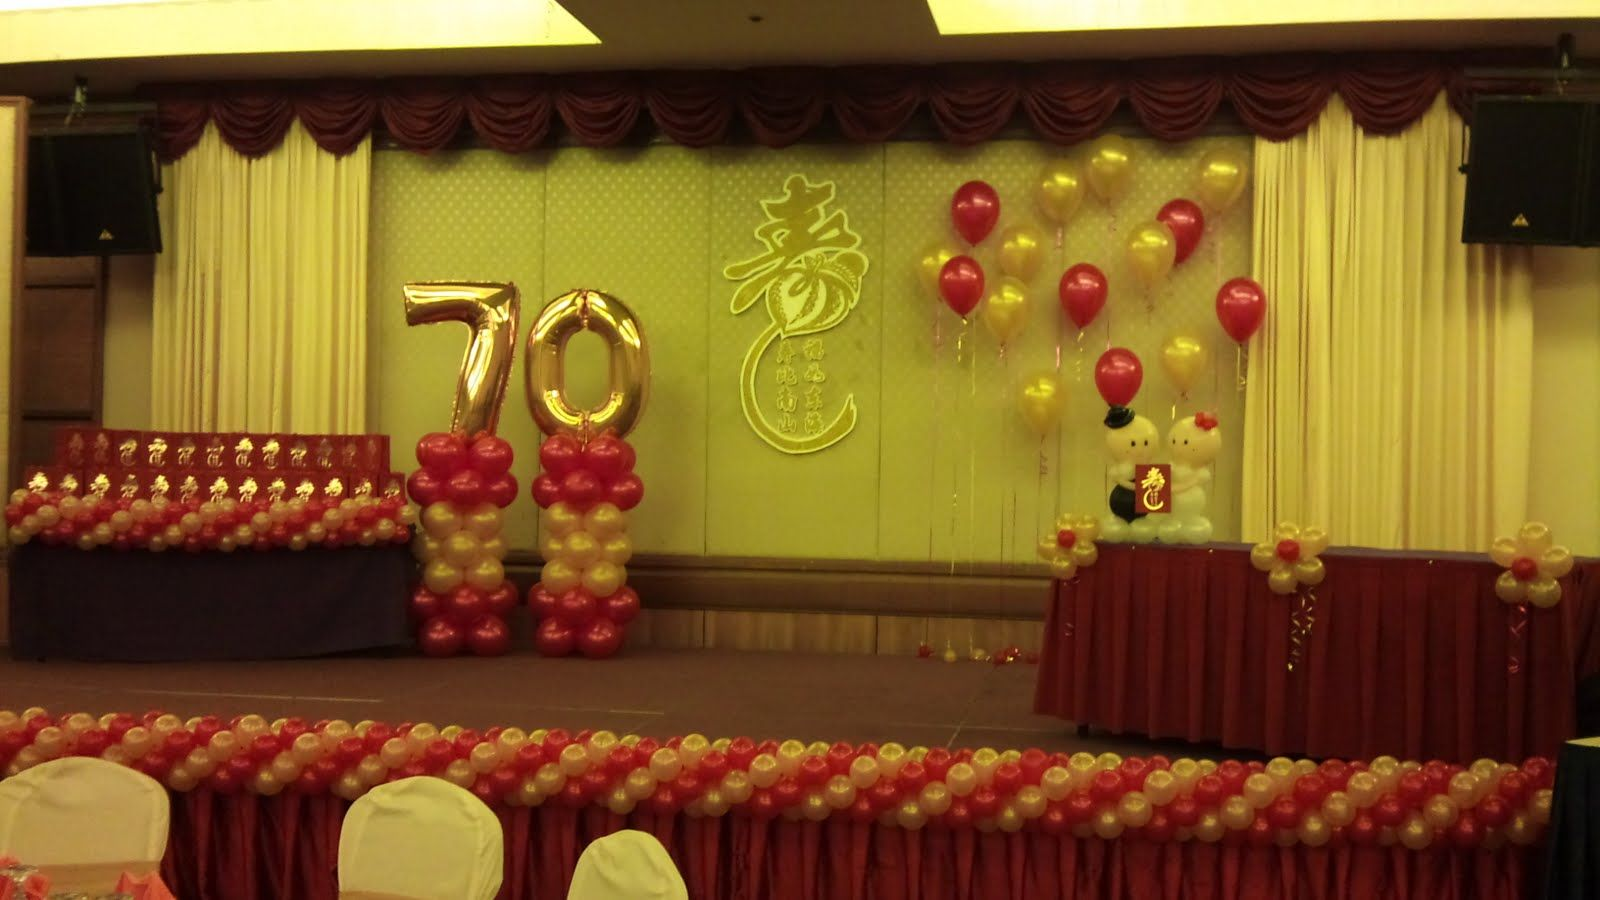 70th birthday party decoration ideas Balloon decorations for